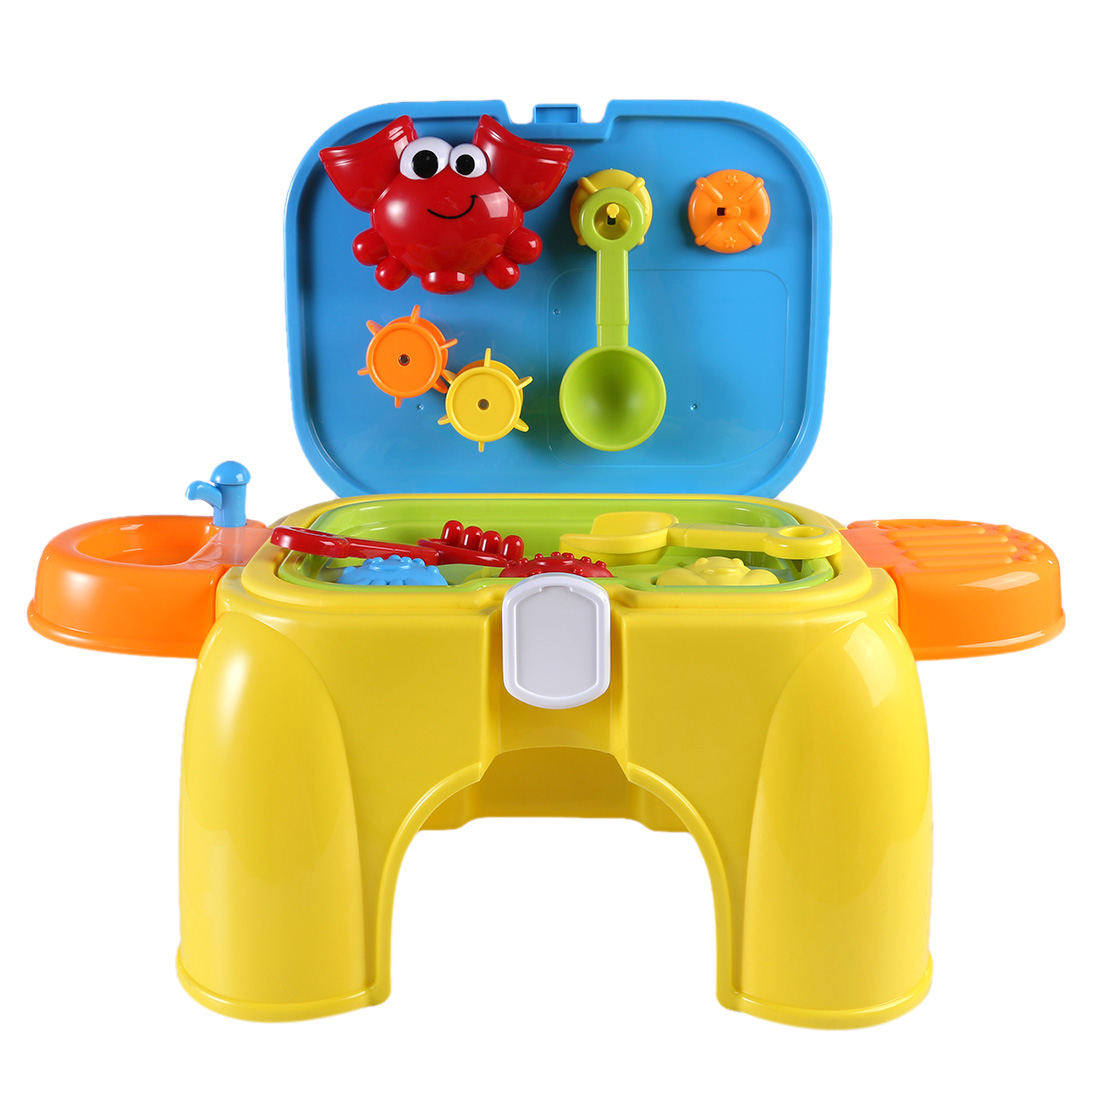 NFSTRIKE Kids Beach sand Toys Pretend Play Set with Retractable Storage Chair Educational Occupations Toys for Children Girls